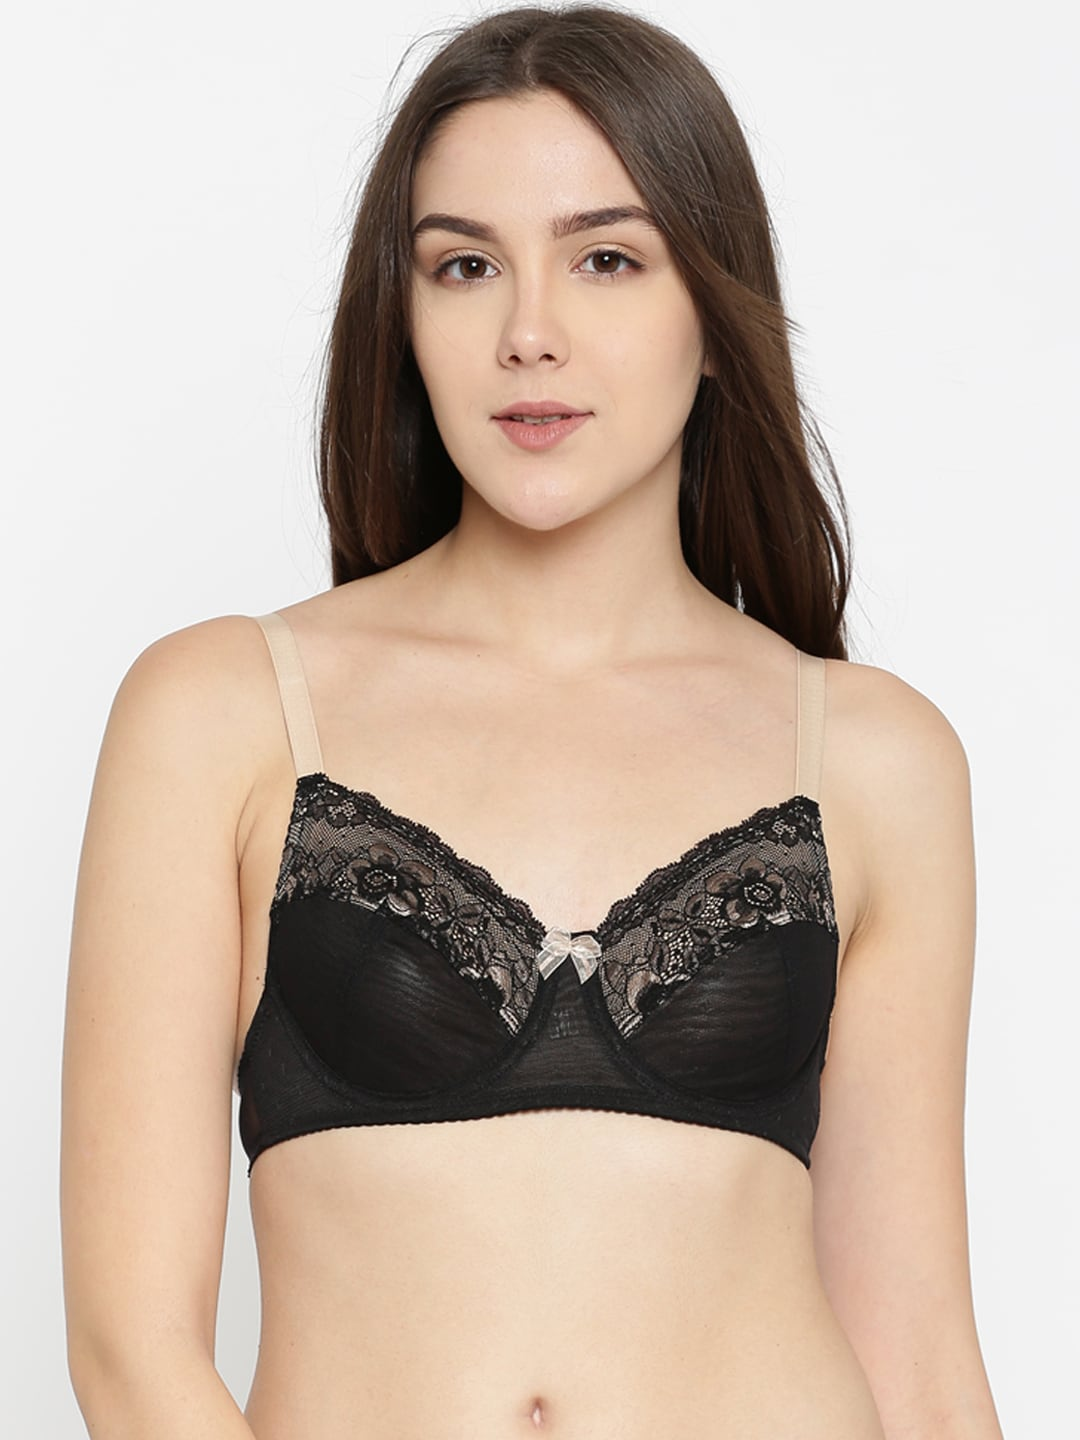 85de724e951 Enamor Black Bra - Buy Enamor Black Bra online in India